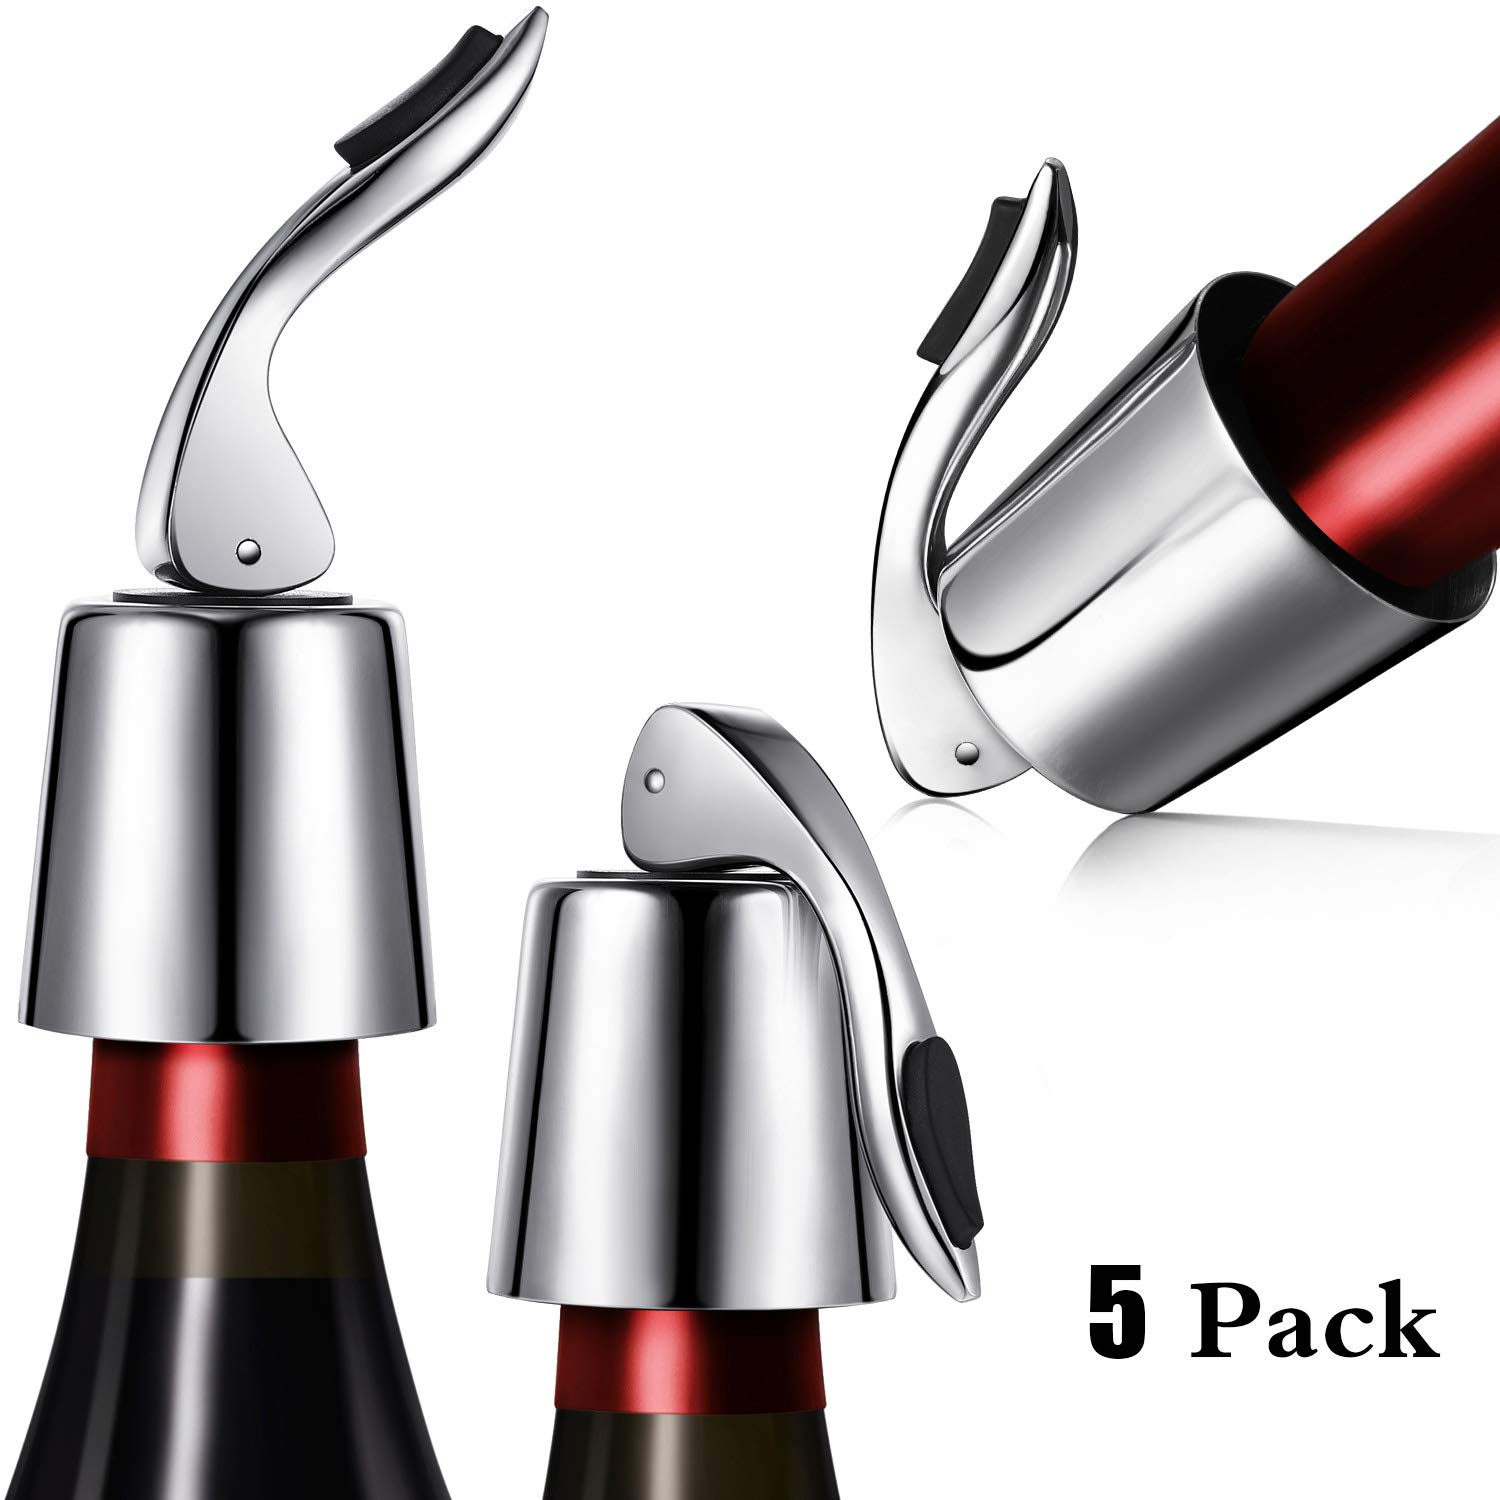 Stainless Steel Wine Stoppers Bottle Stoppers Vacuum Bottle Sealer Bottle Plug with Inner Rubber 1.6 x 3.7 inches (5 Pack)